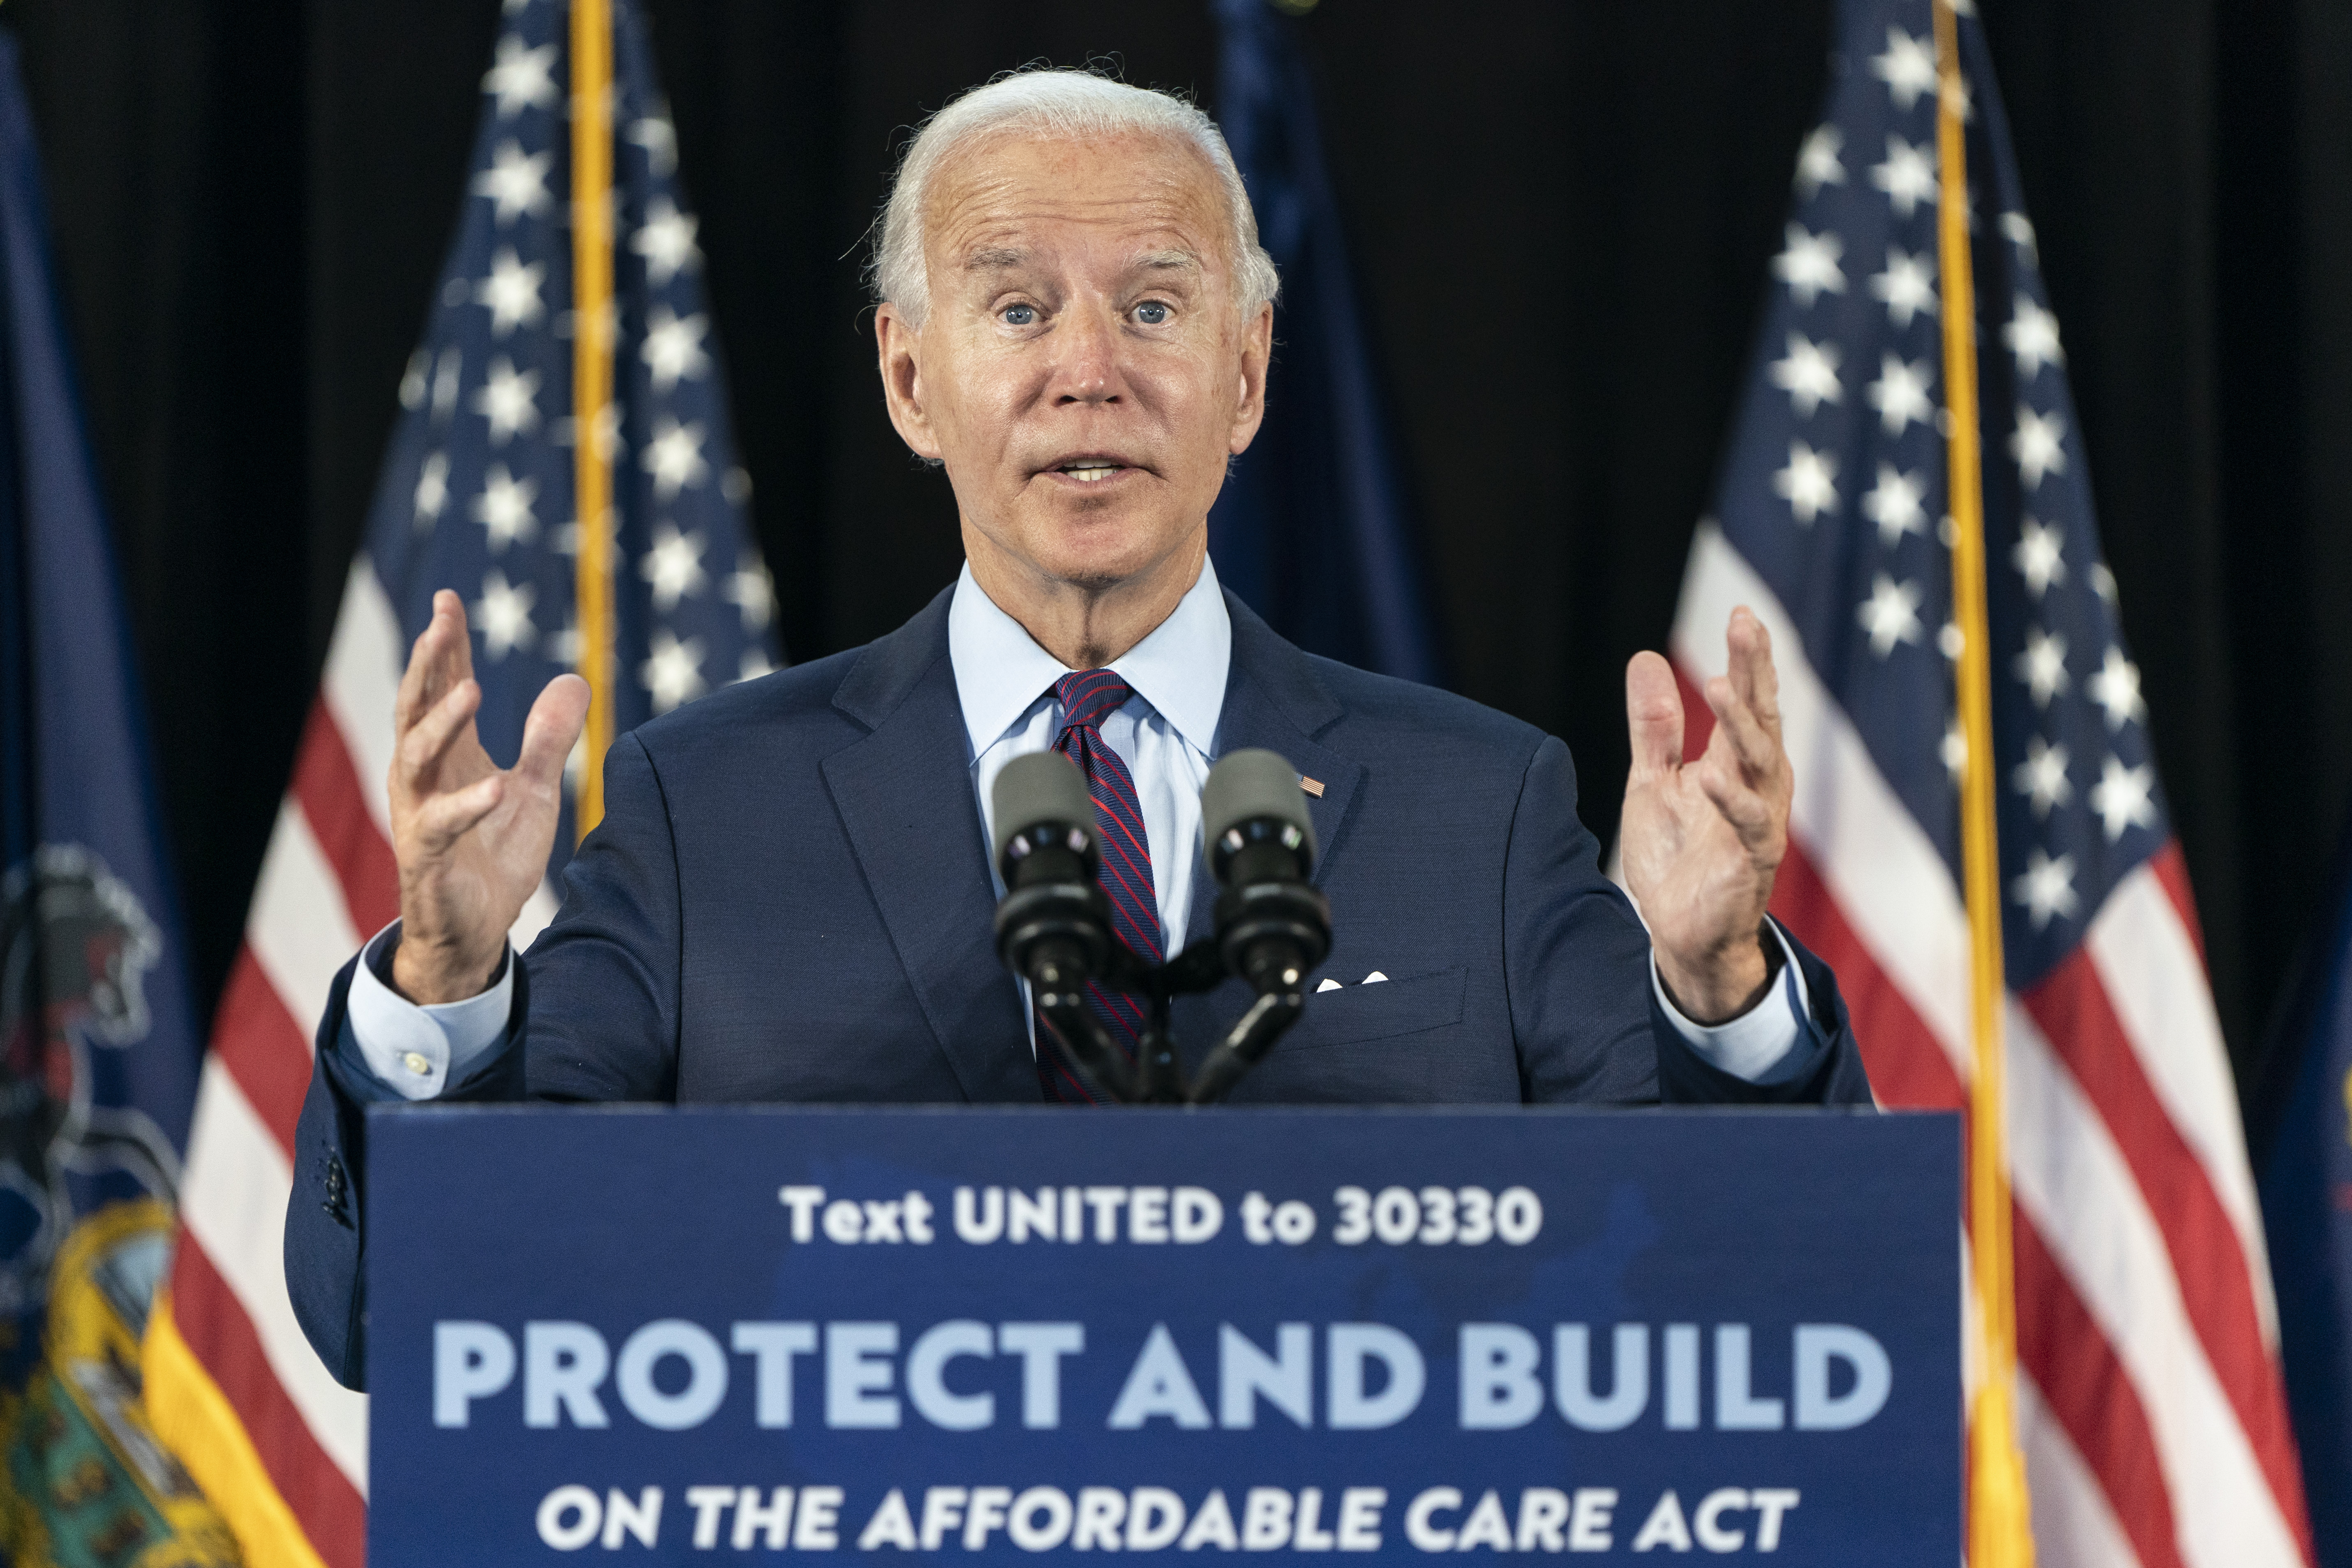 Democratic presidential candidate former Vice President Joe Biden speaks during an event about affordable healthcare at the Lancaster Recreation Center on June 25, 2020 in Lancaster, Pennsylvania.